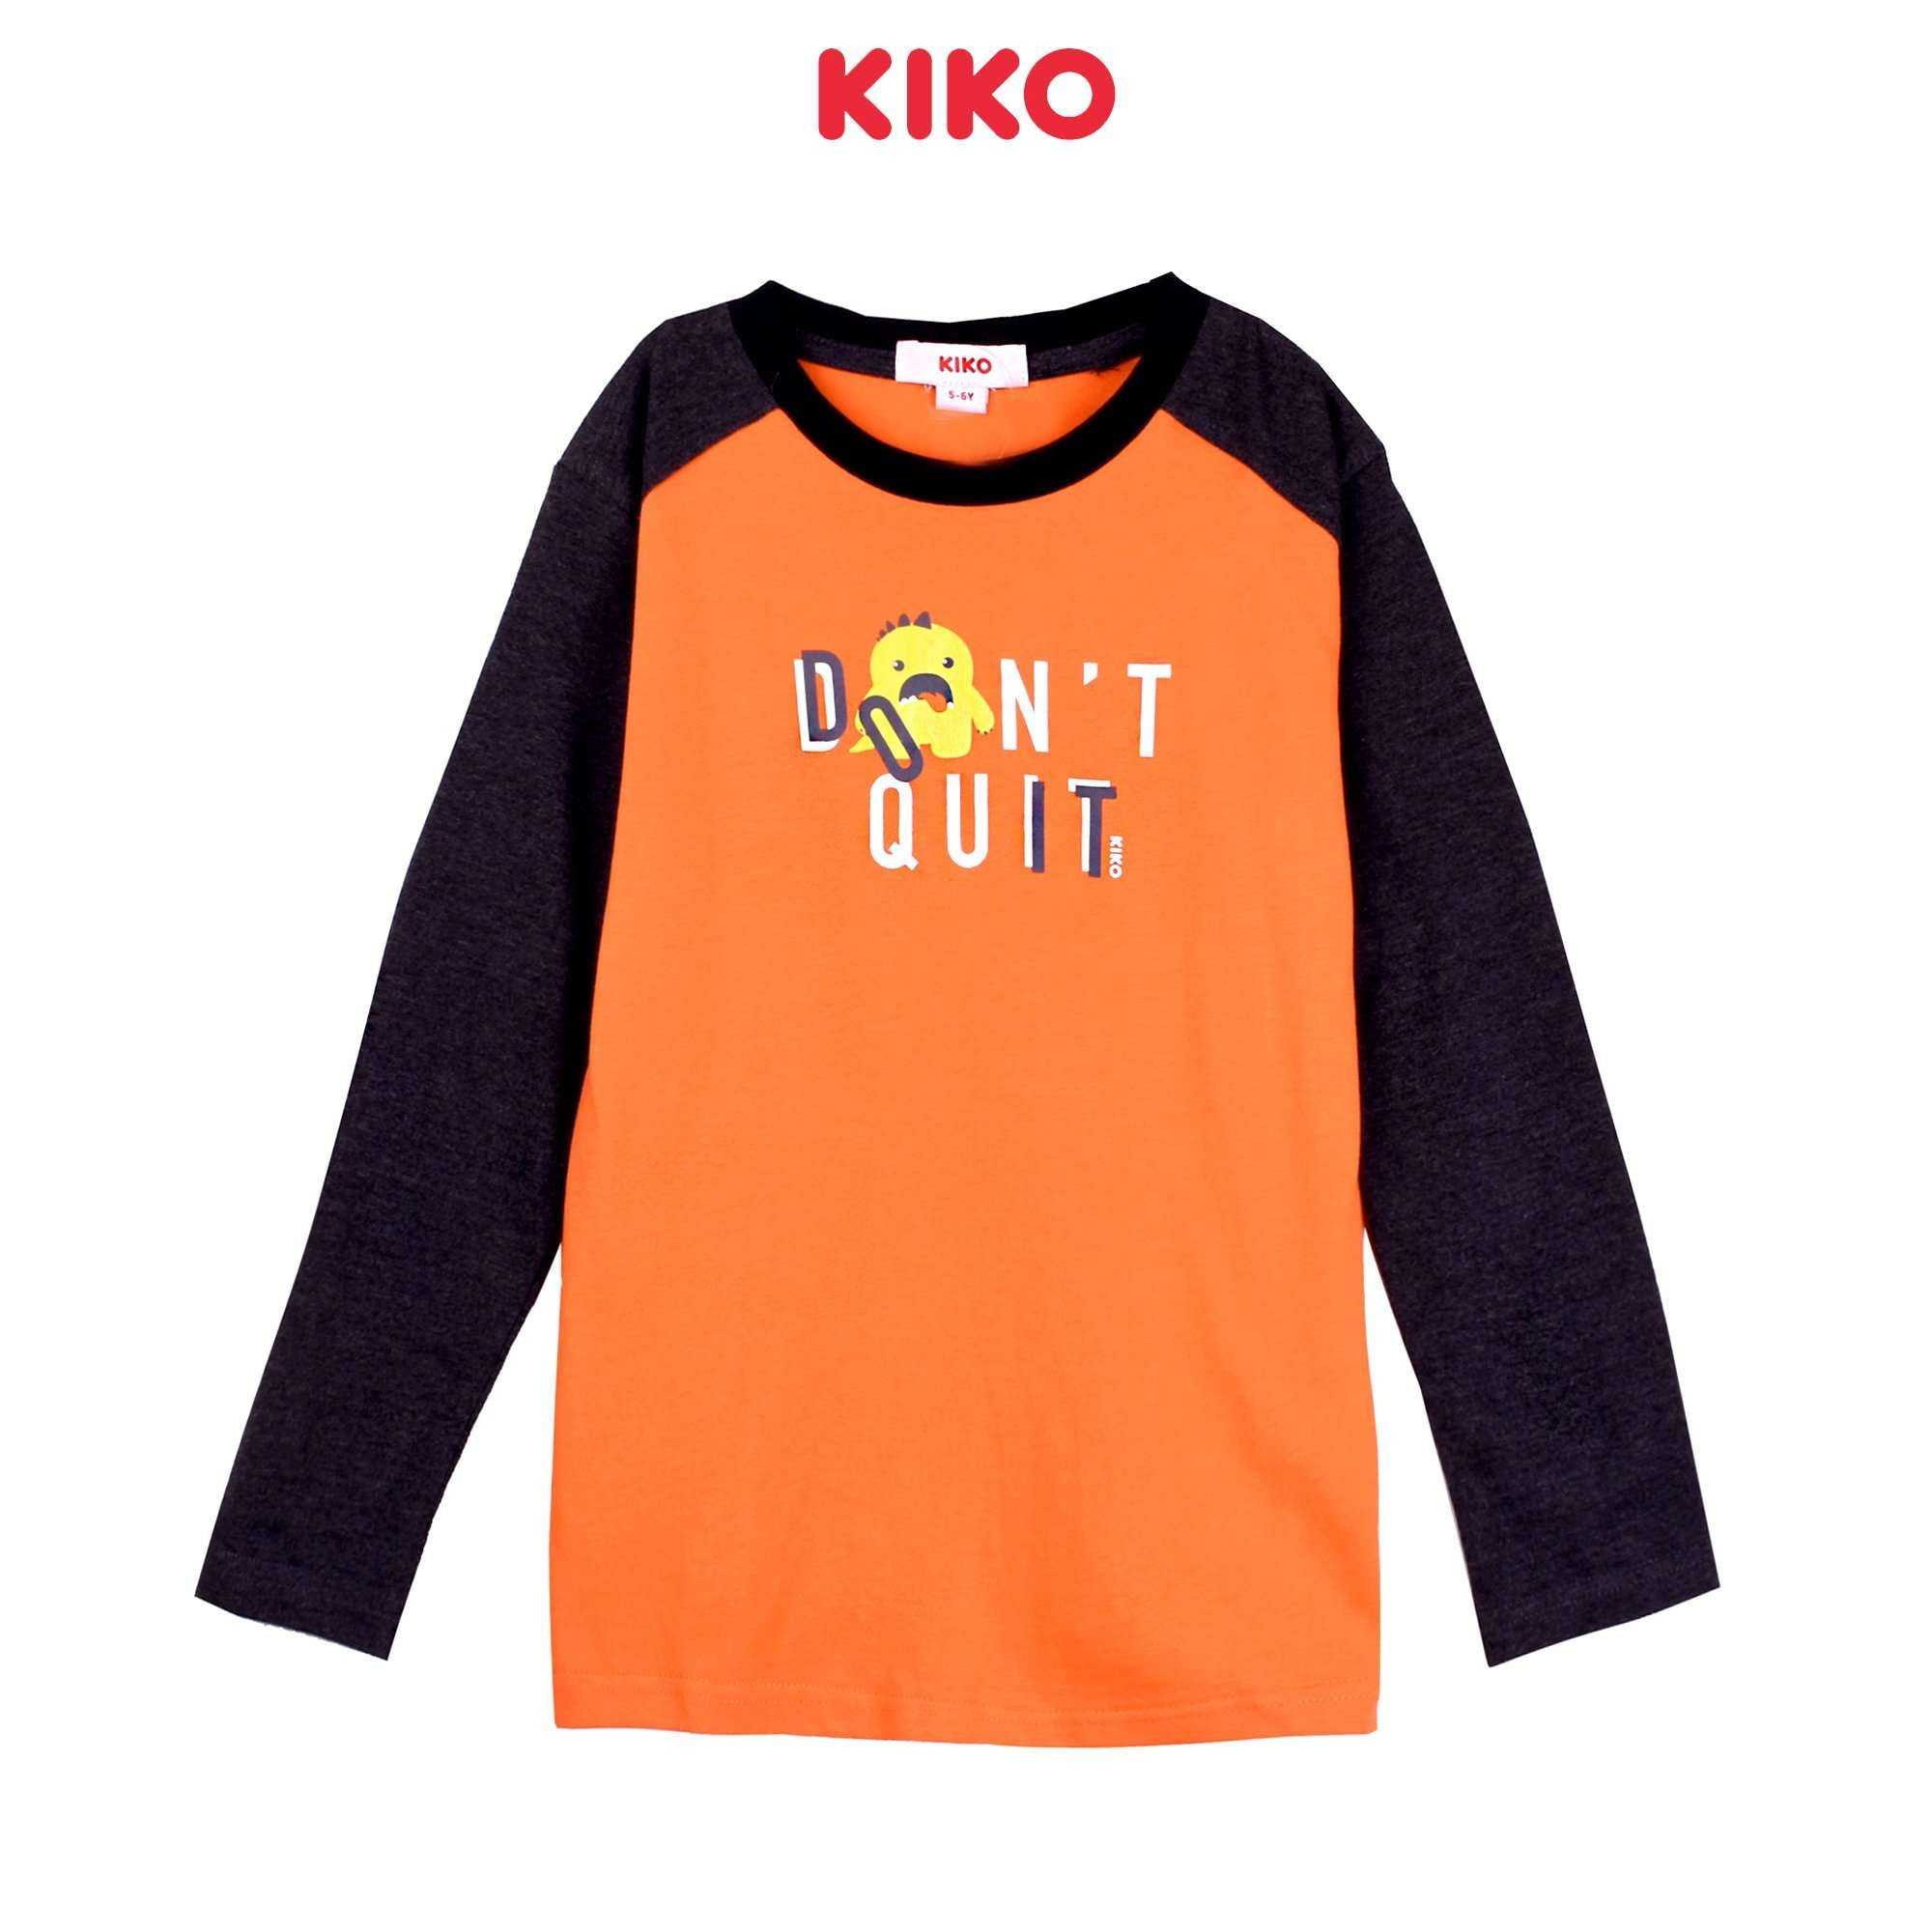 KIKO Boy Long Sleeve Tee - Orange K922103-1320-E5 : Buy KIKO online at CMG.MY